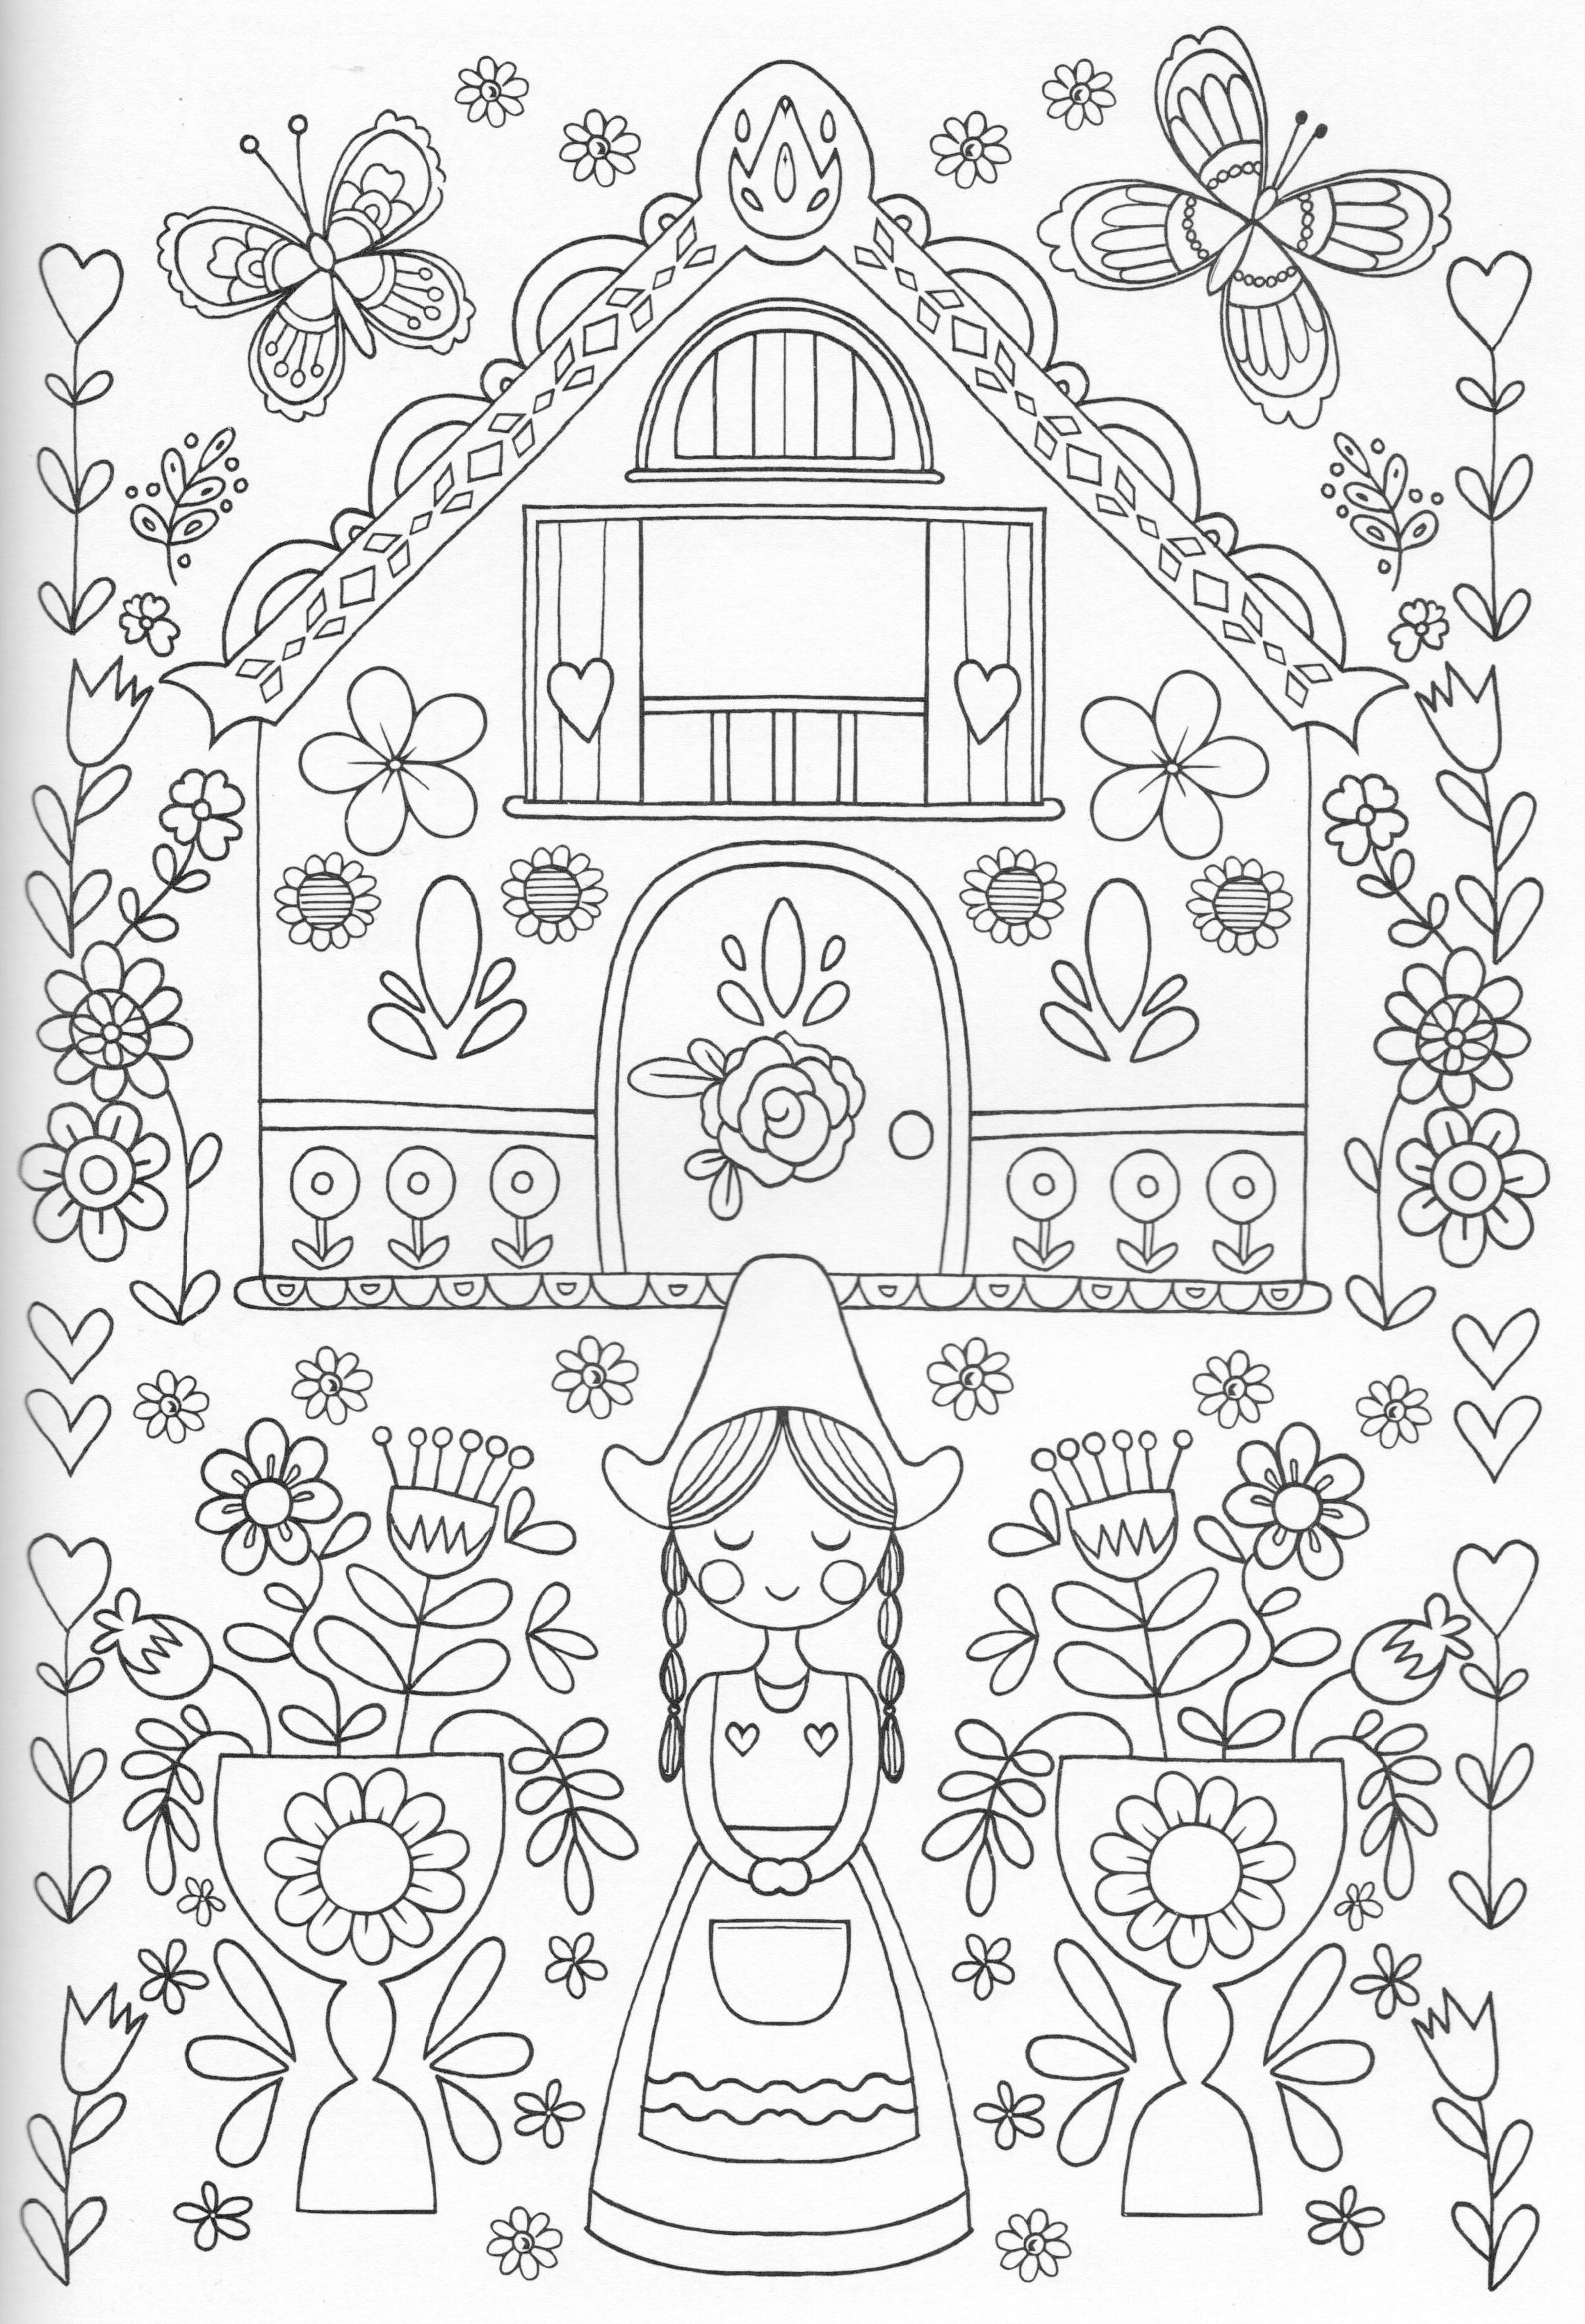 scandinavian coloring book pg 25 - Coloring Pg